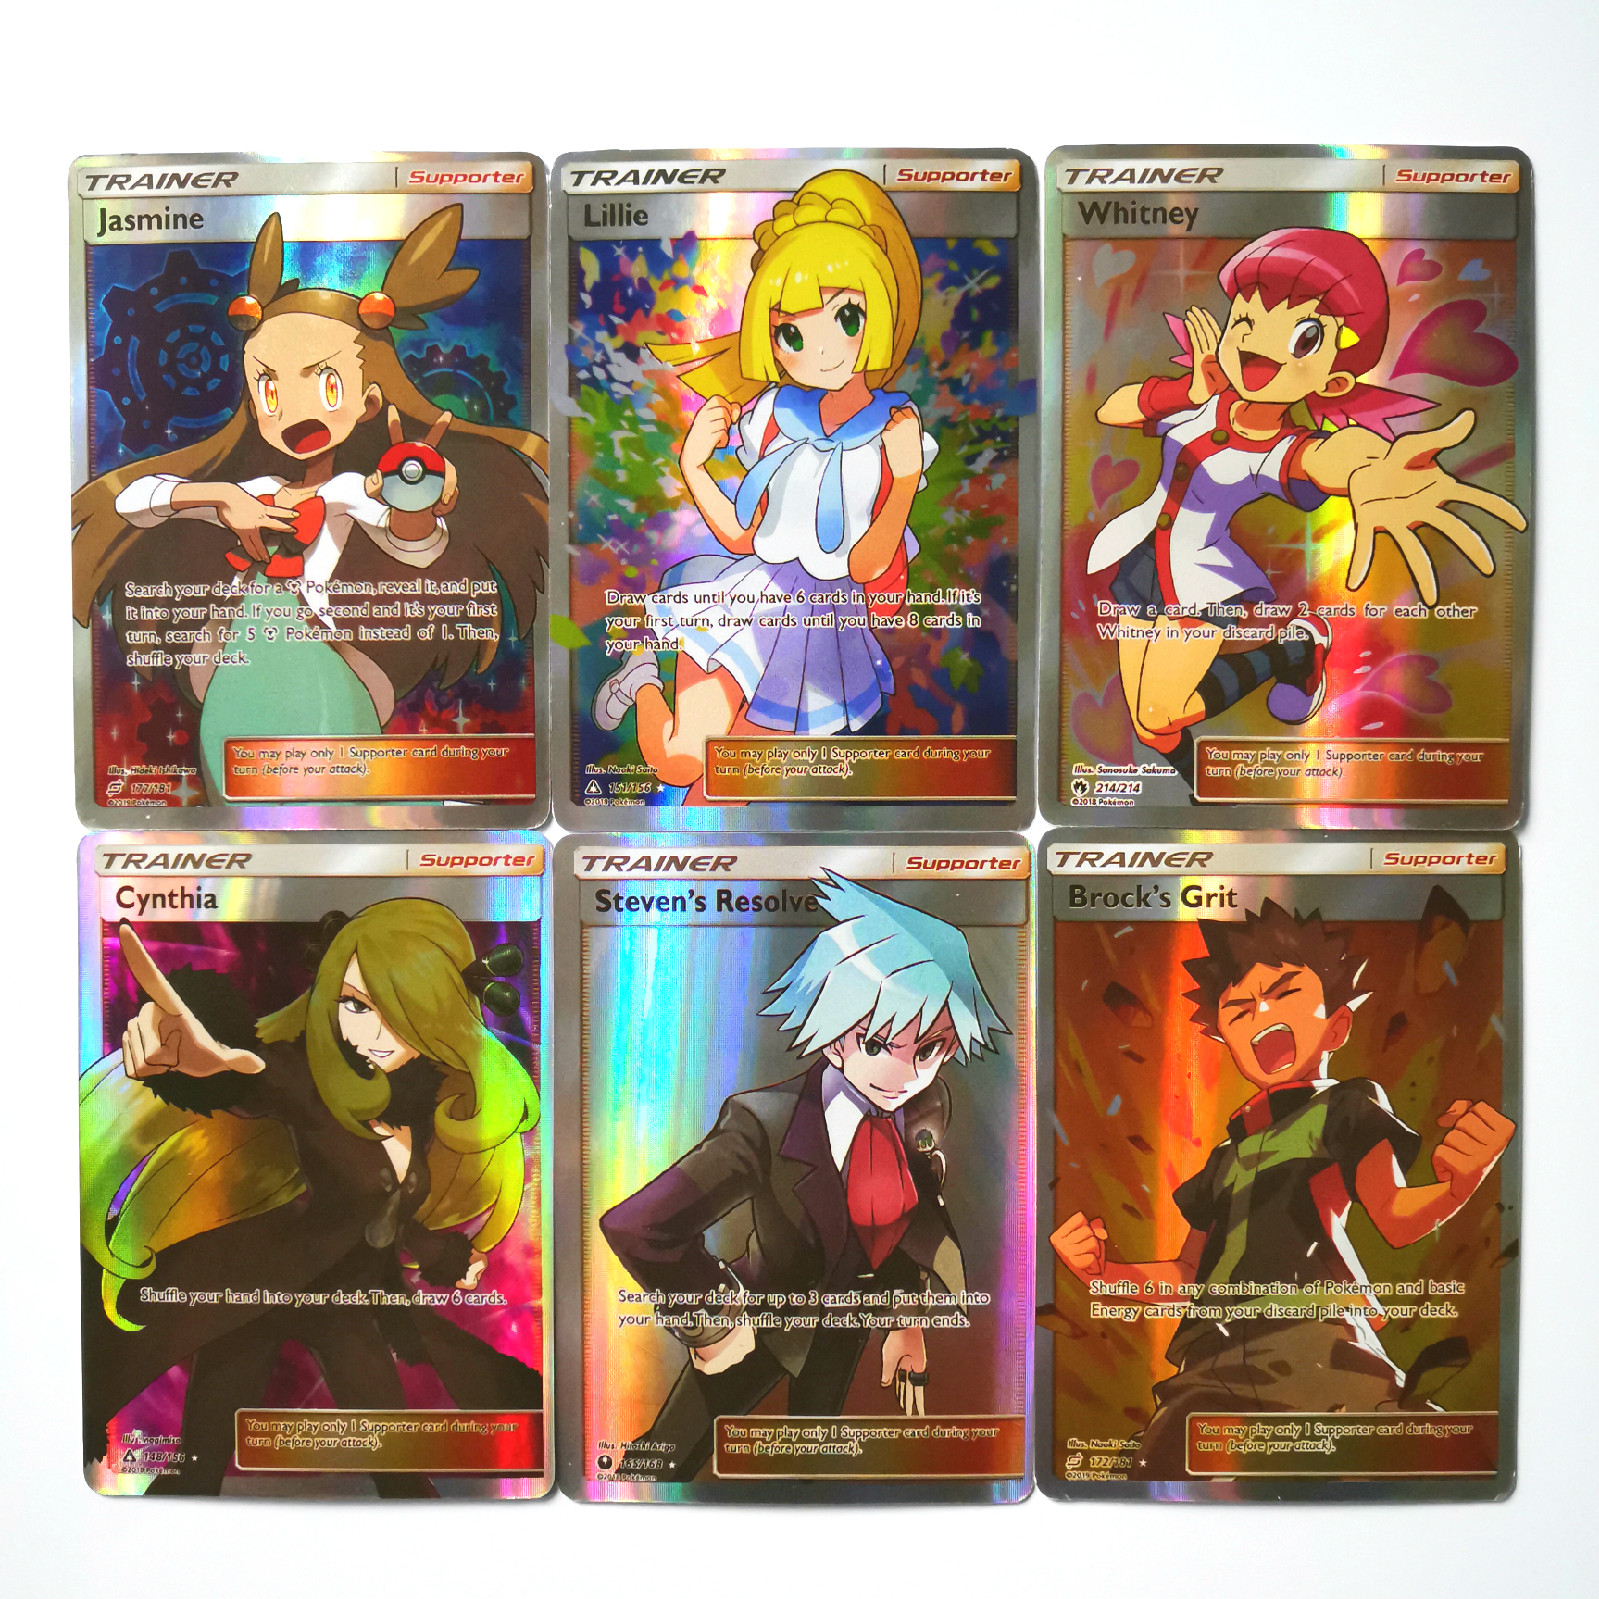 TAKARA TOMY 100pcs set Pokemon Trainer Toys Hobbies Hobby Collectibles Game Collection Anime Cards for Children Christmas Gift